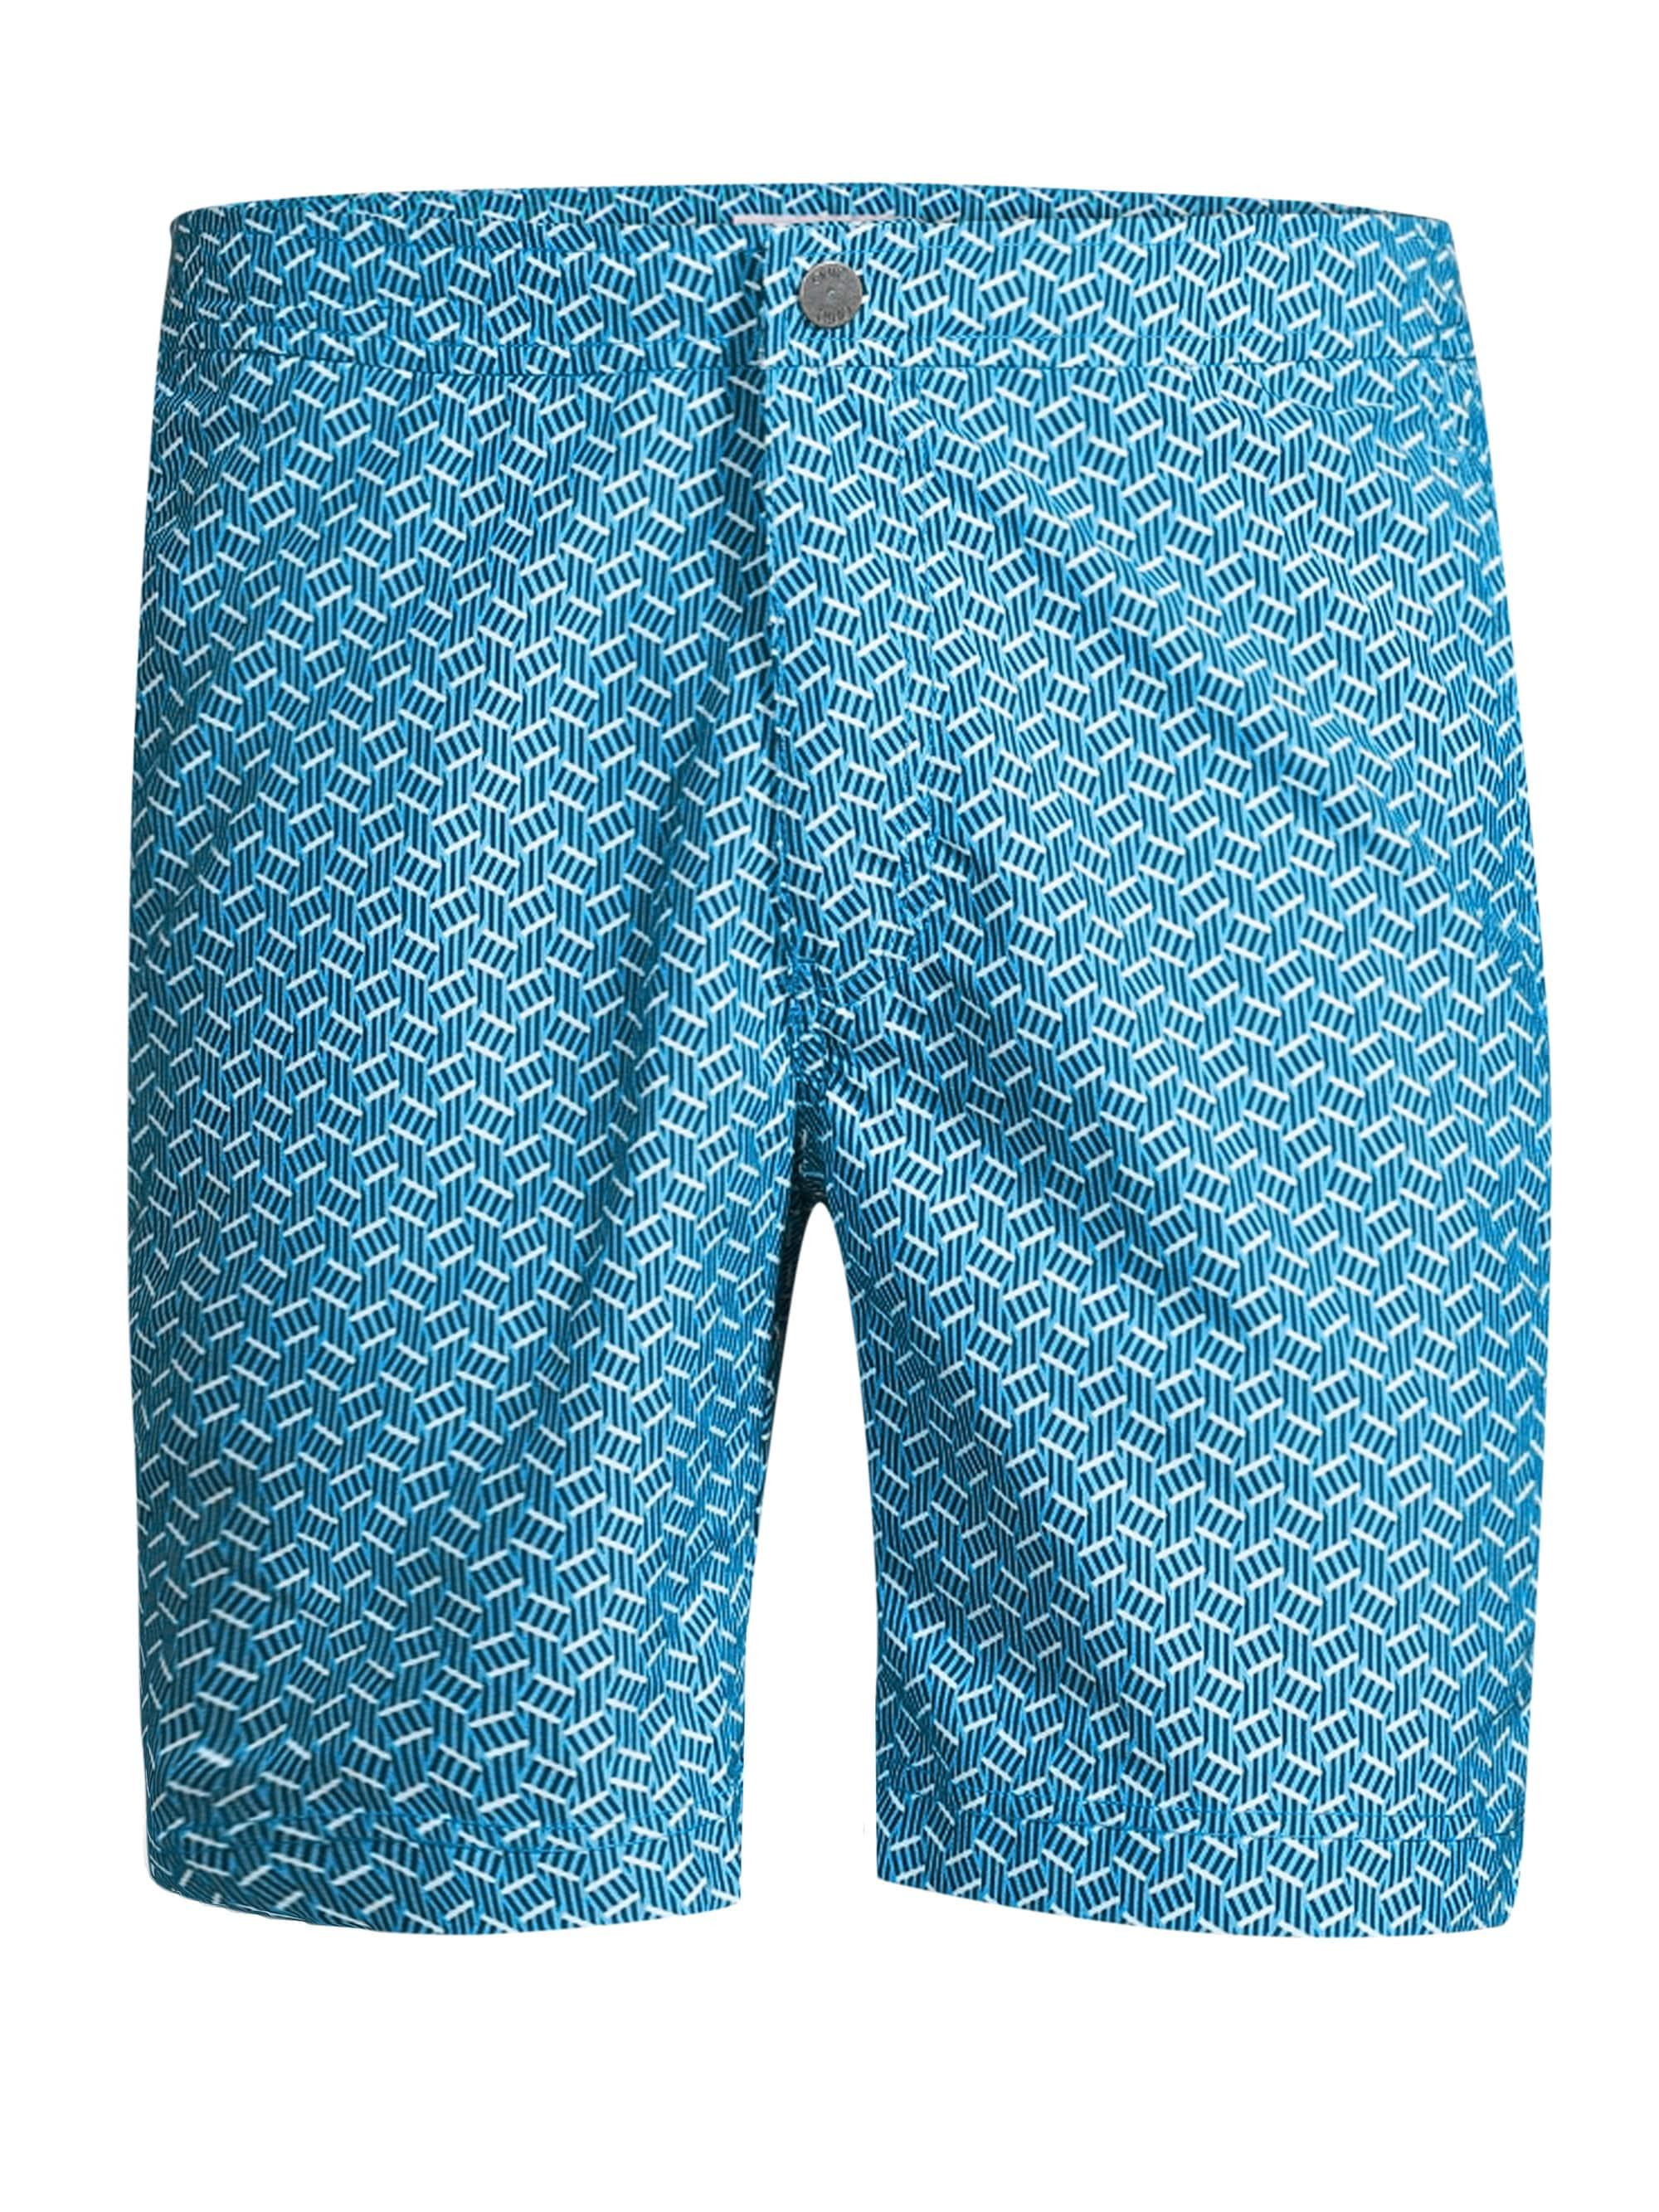 080643ec787b0 Onia Calder Geometric Swim Trunks in Blue for Men - Lyst